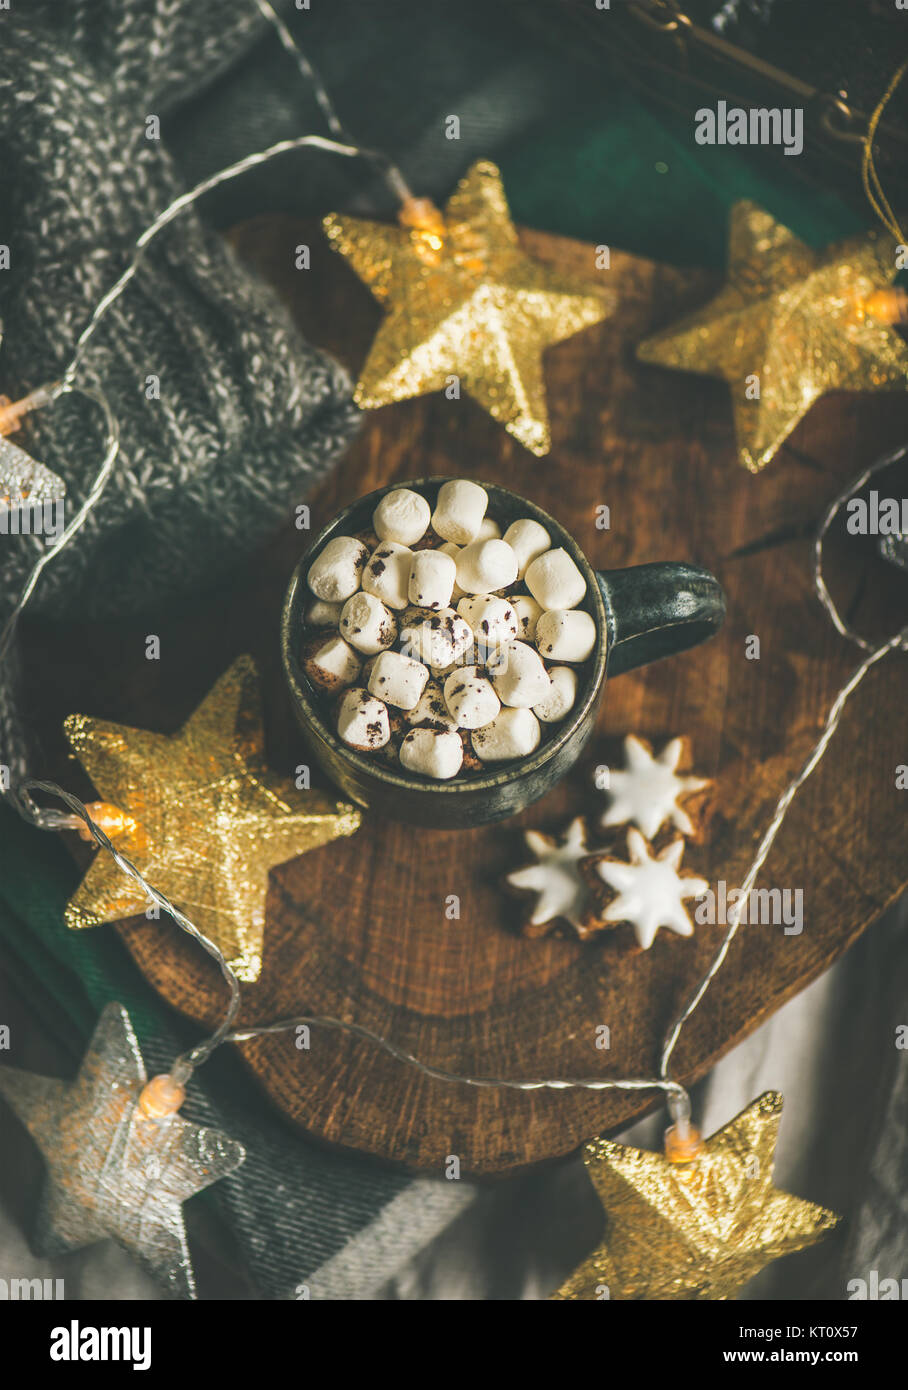 Christmas or New Year winter hot chocolate with marshmallows and gingerbread cookies over rustic wooden board served - Stock Image